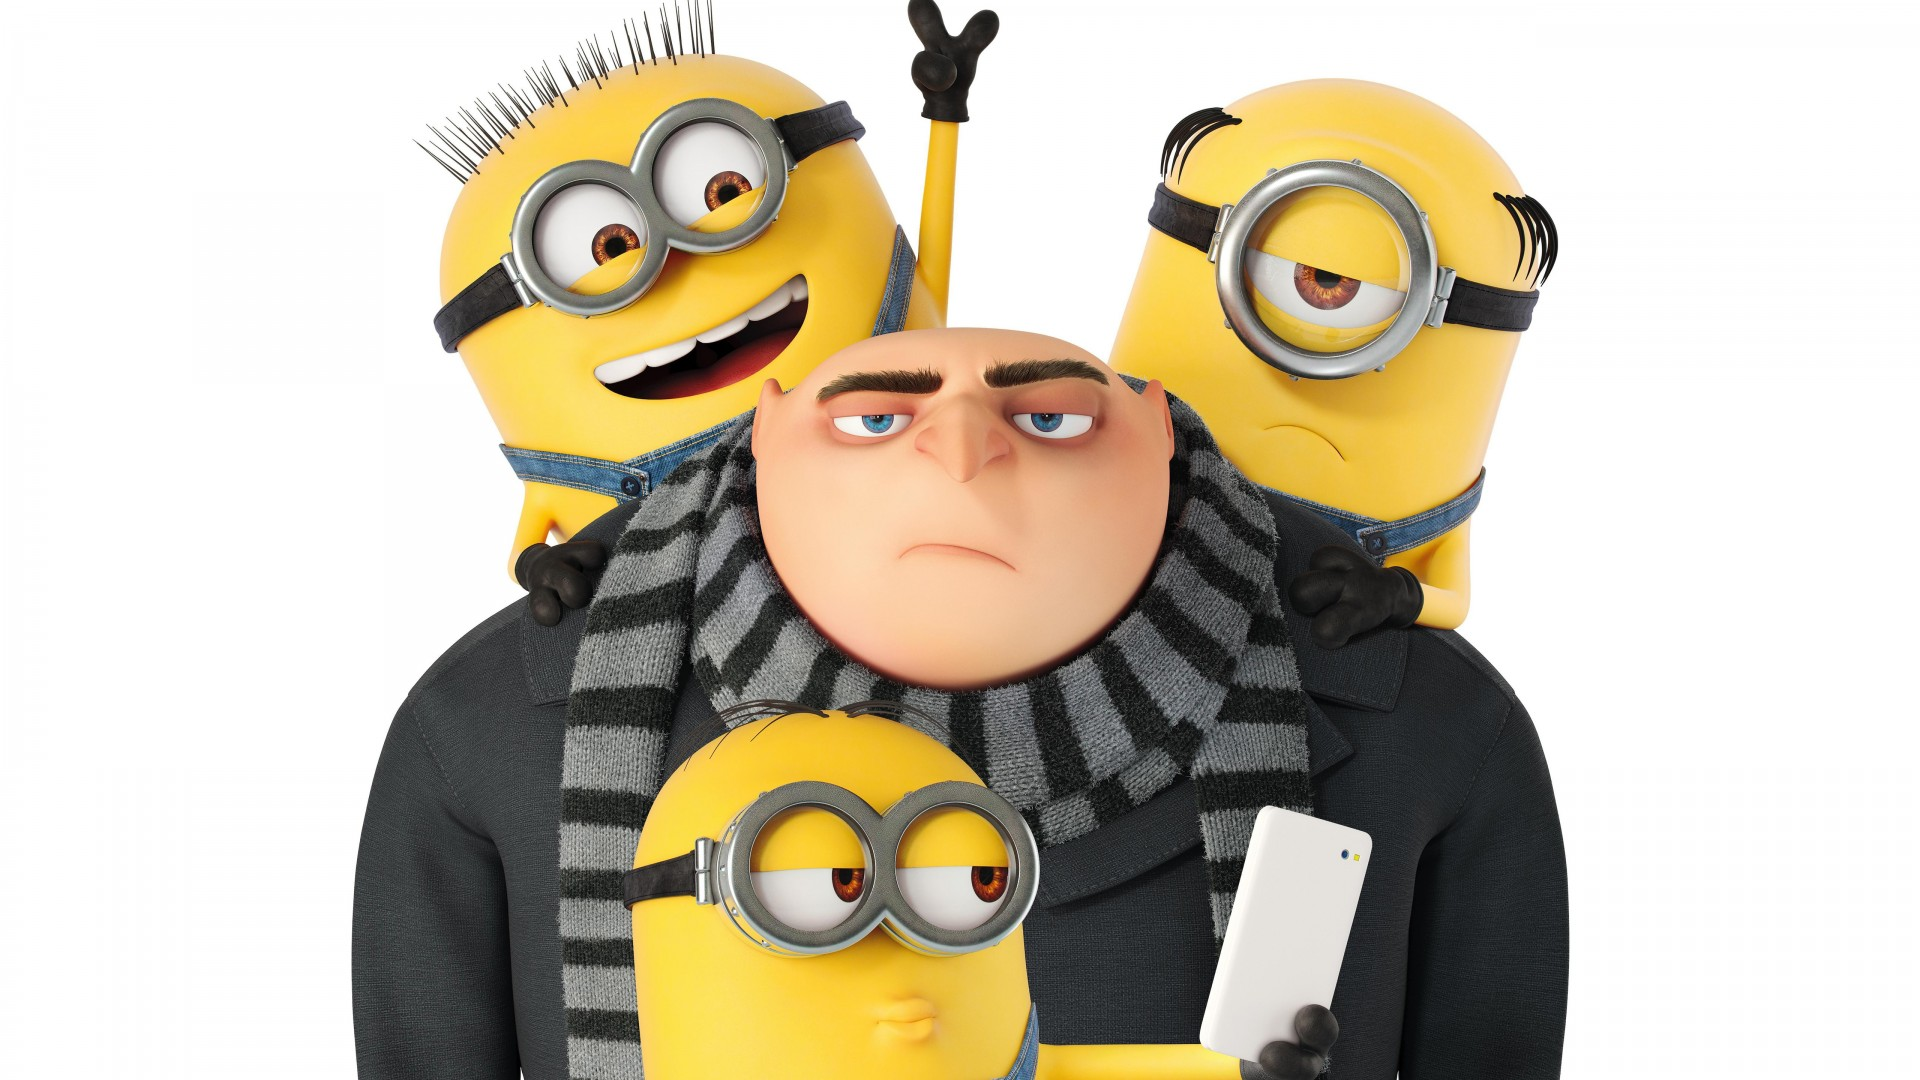 Cute Minions Wallpaper Gru Minions Despicable Me 3 5k Wallpapers Hd Wallpapers